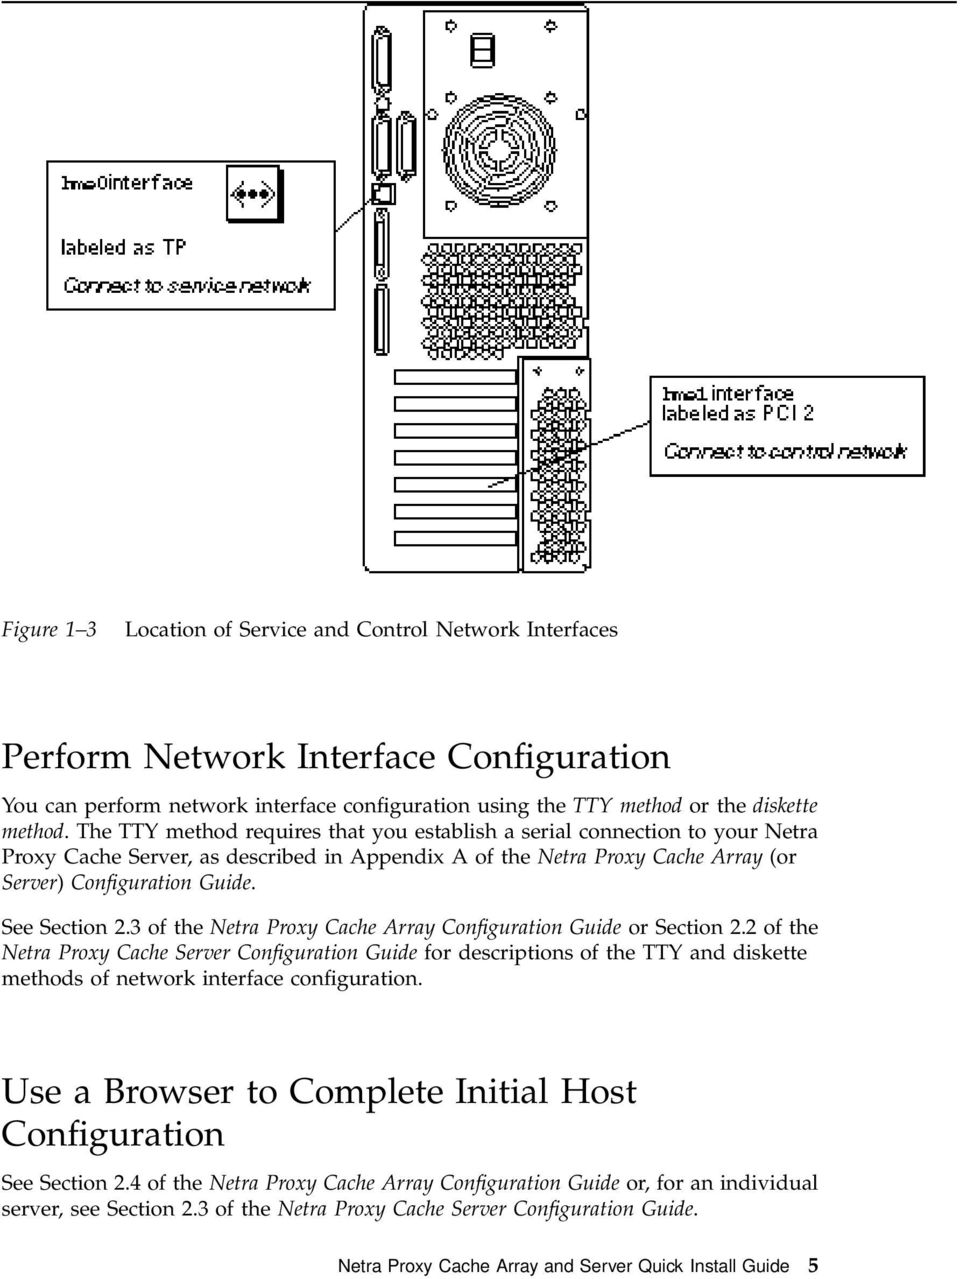 See Section 2.3 of the Netra Proxy Cache Array Configuration Guide or Section 2.